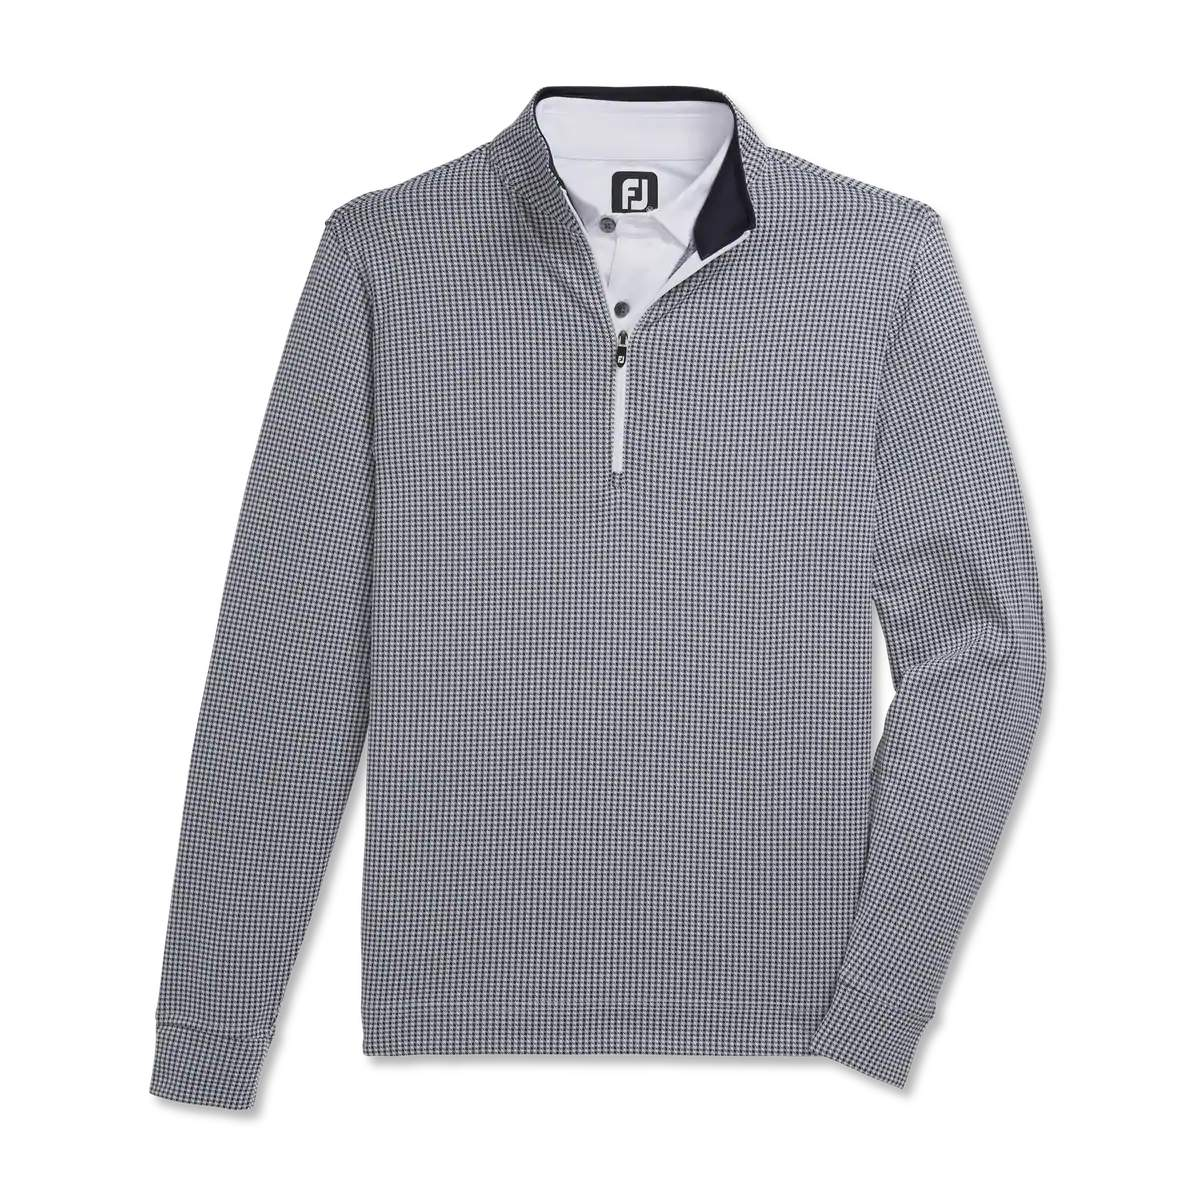 FootJoy Men's Houndstooth Jacquard 1/4 Zip Navy Pullover